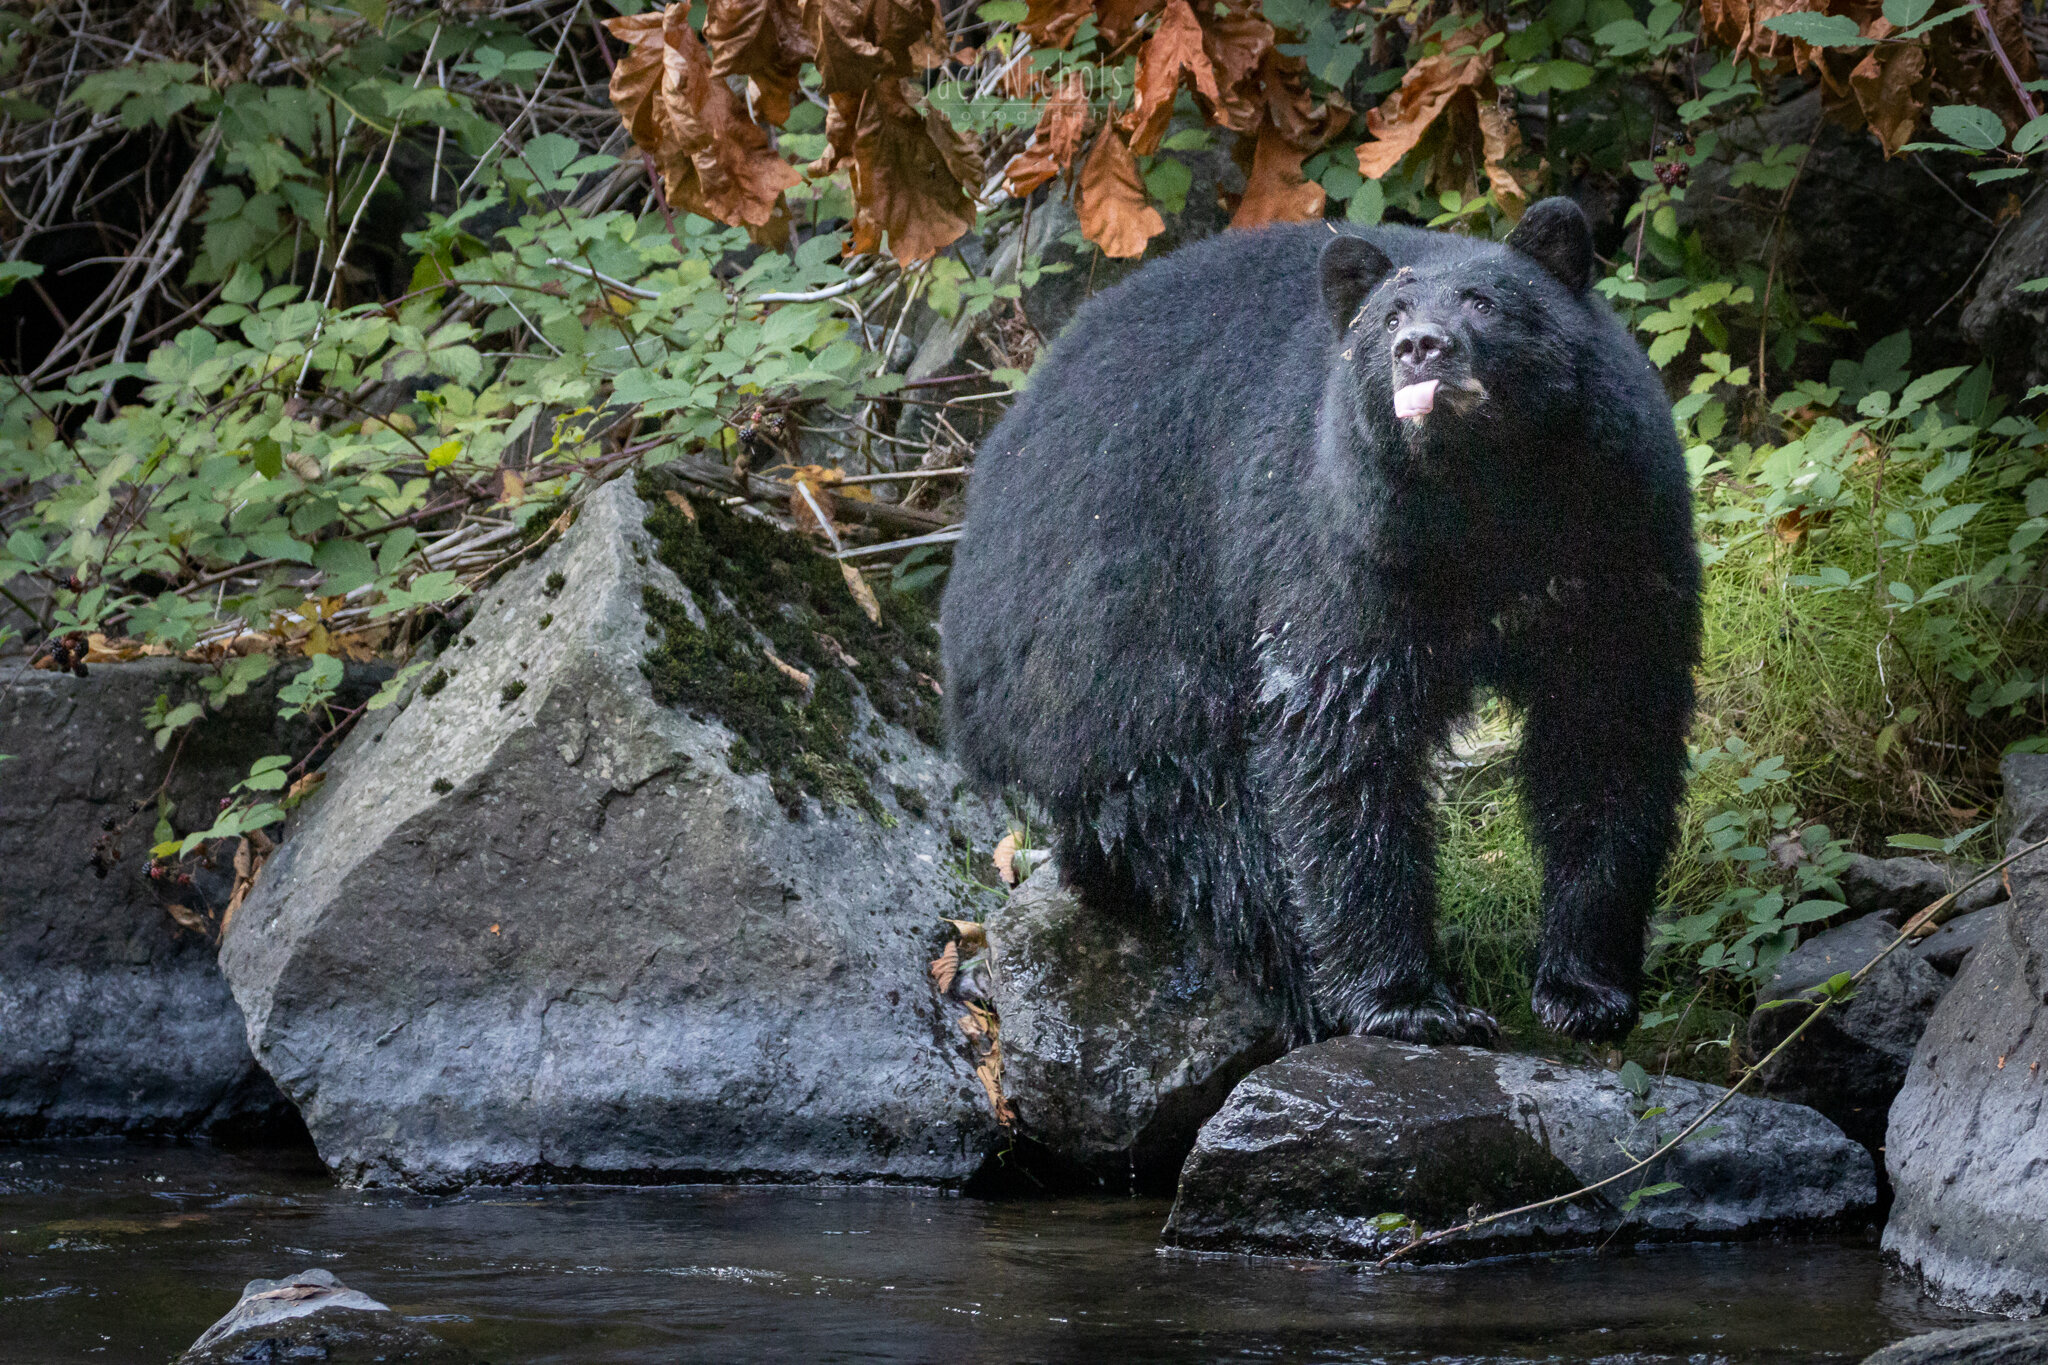 Campbell River, Quinsam - Black bear on rock sticking tongue out-20190907.jpg